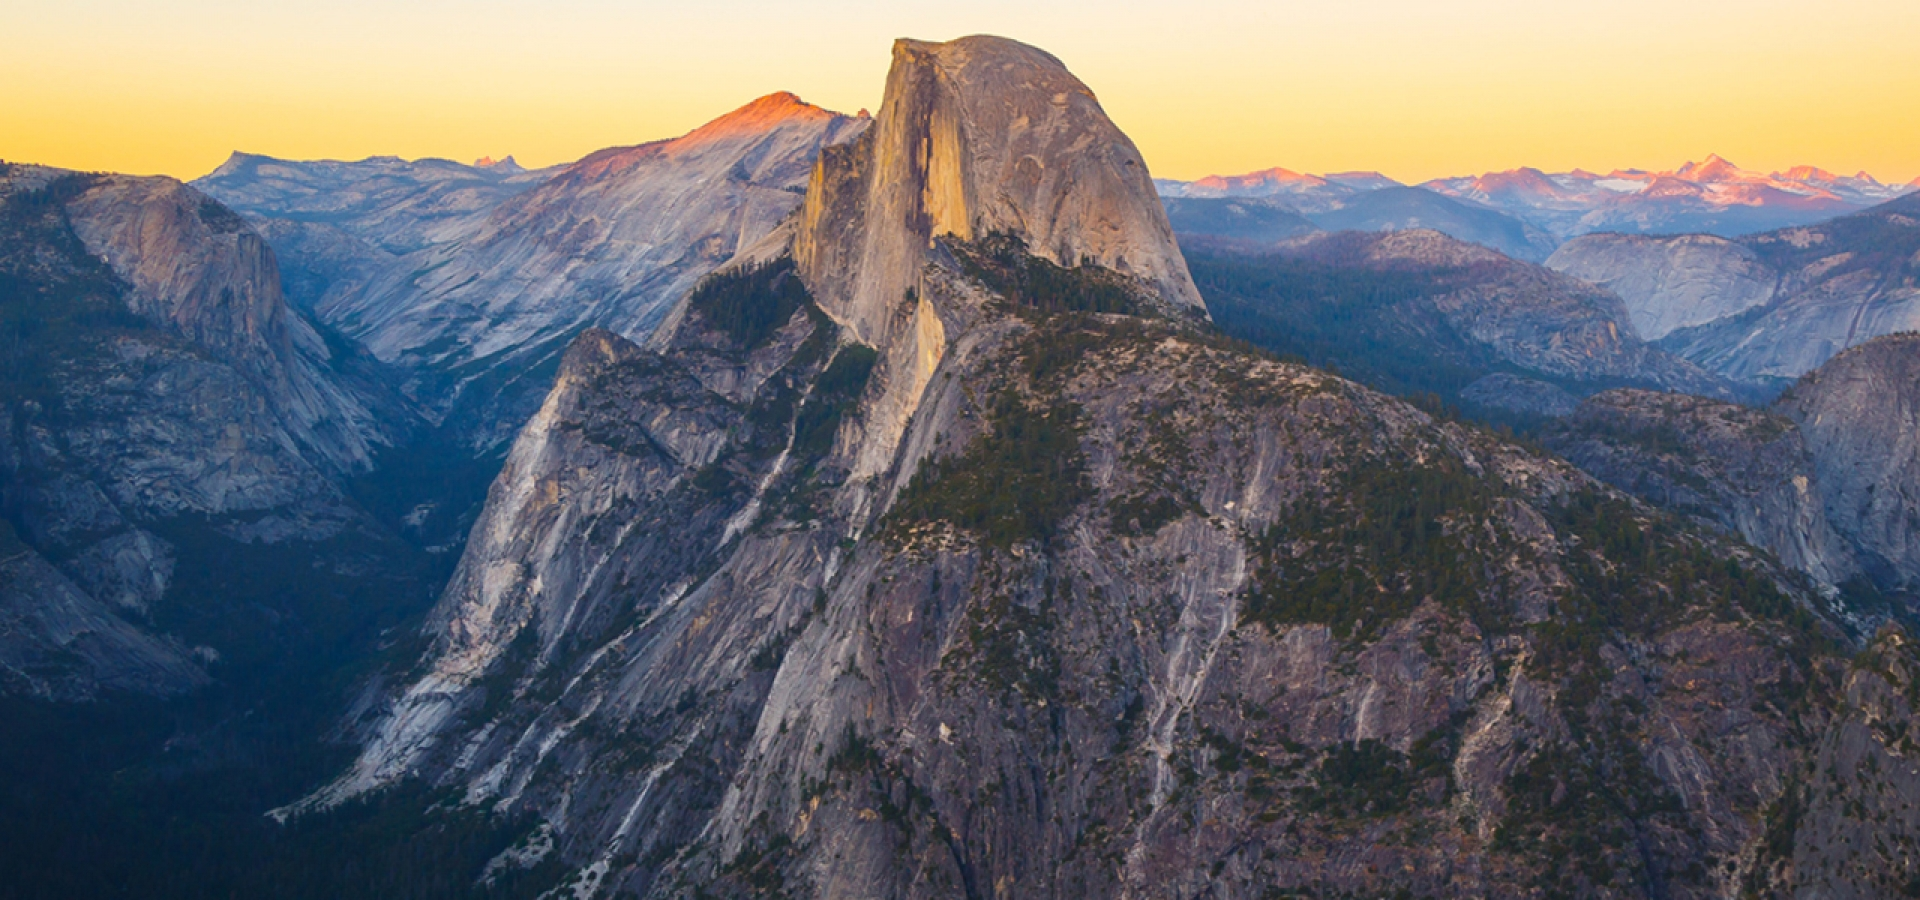 5-Halfdome-in-Yosemite